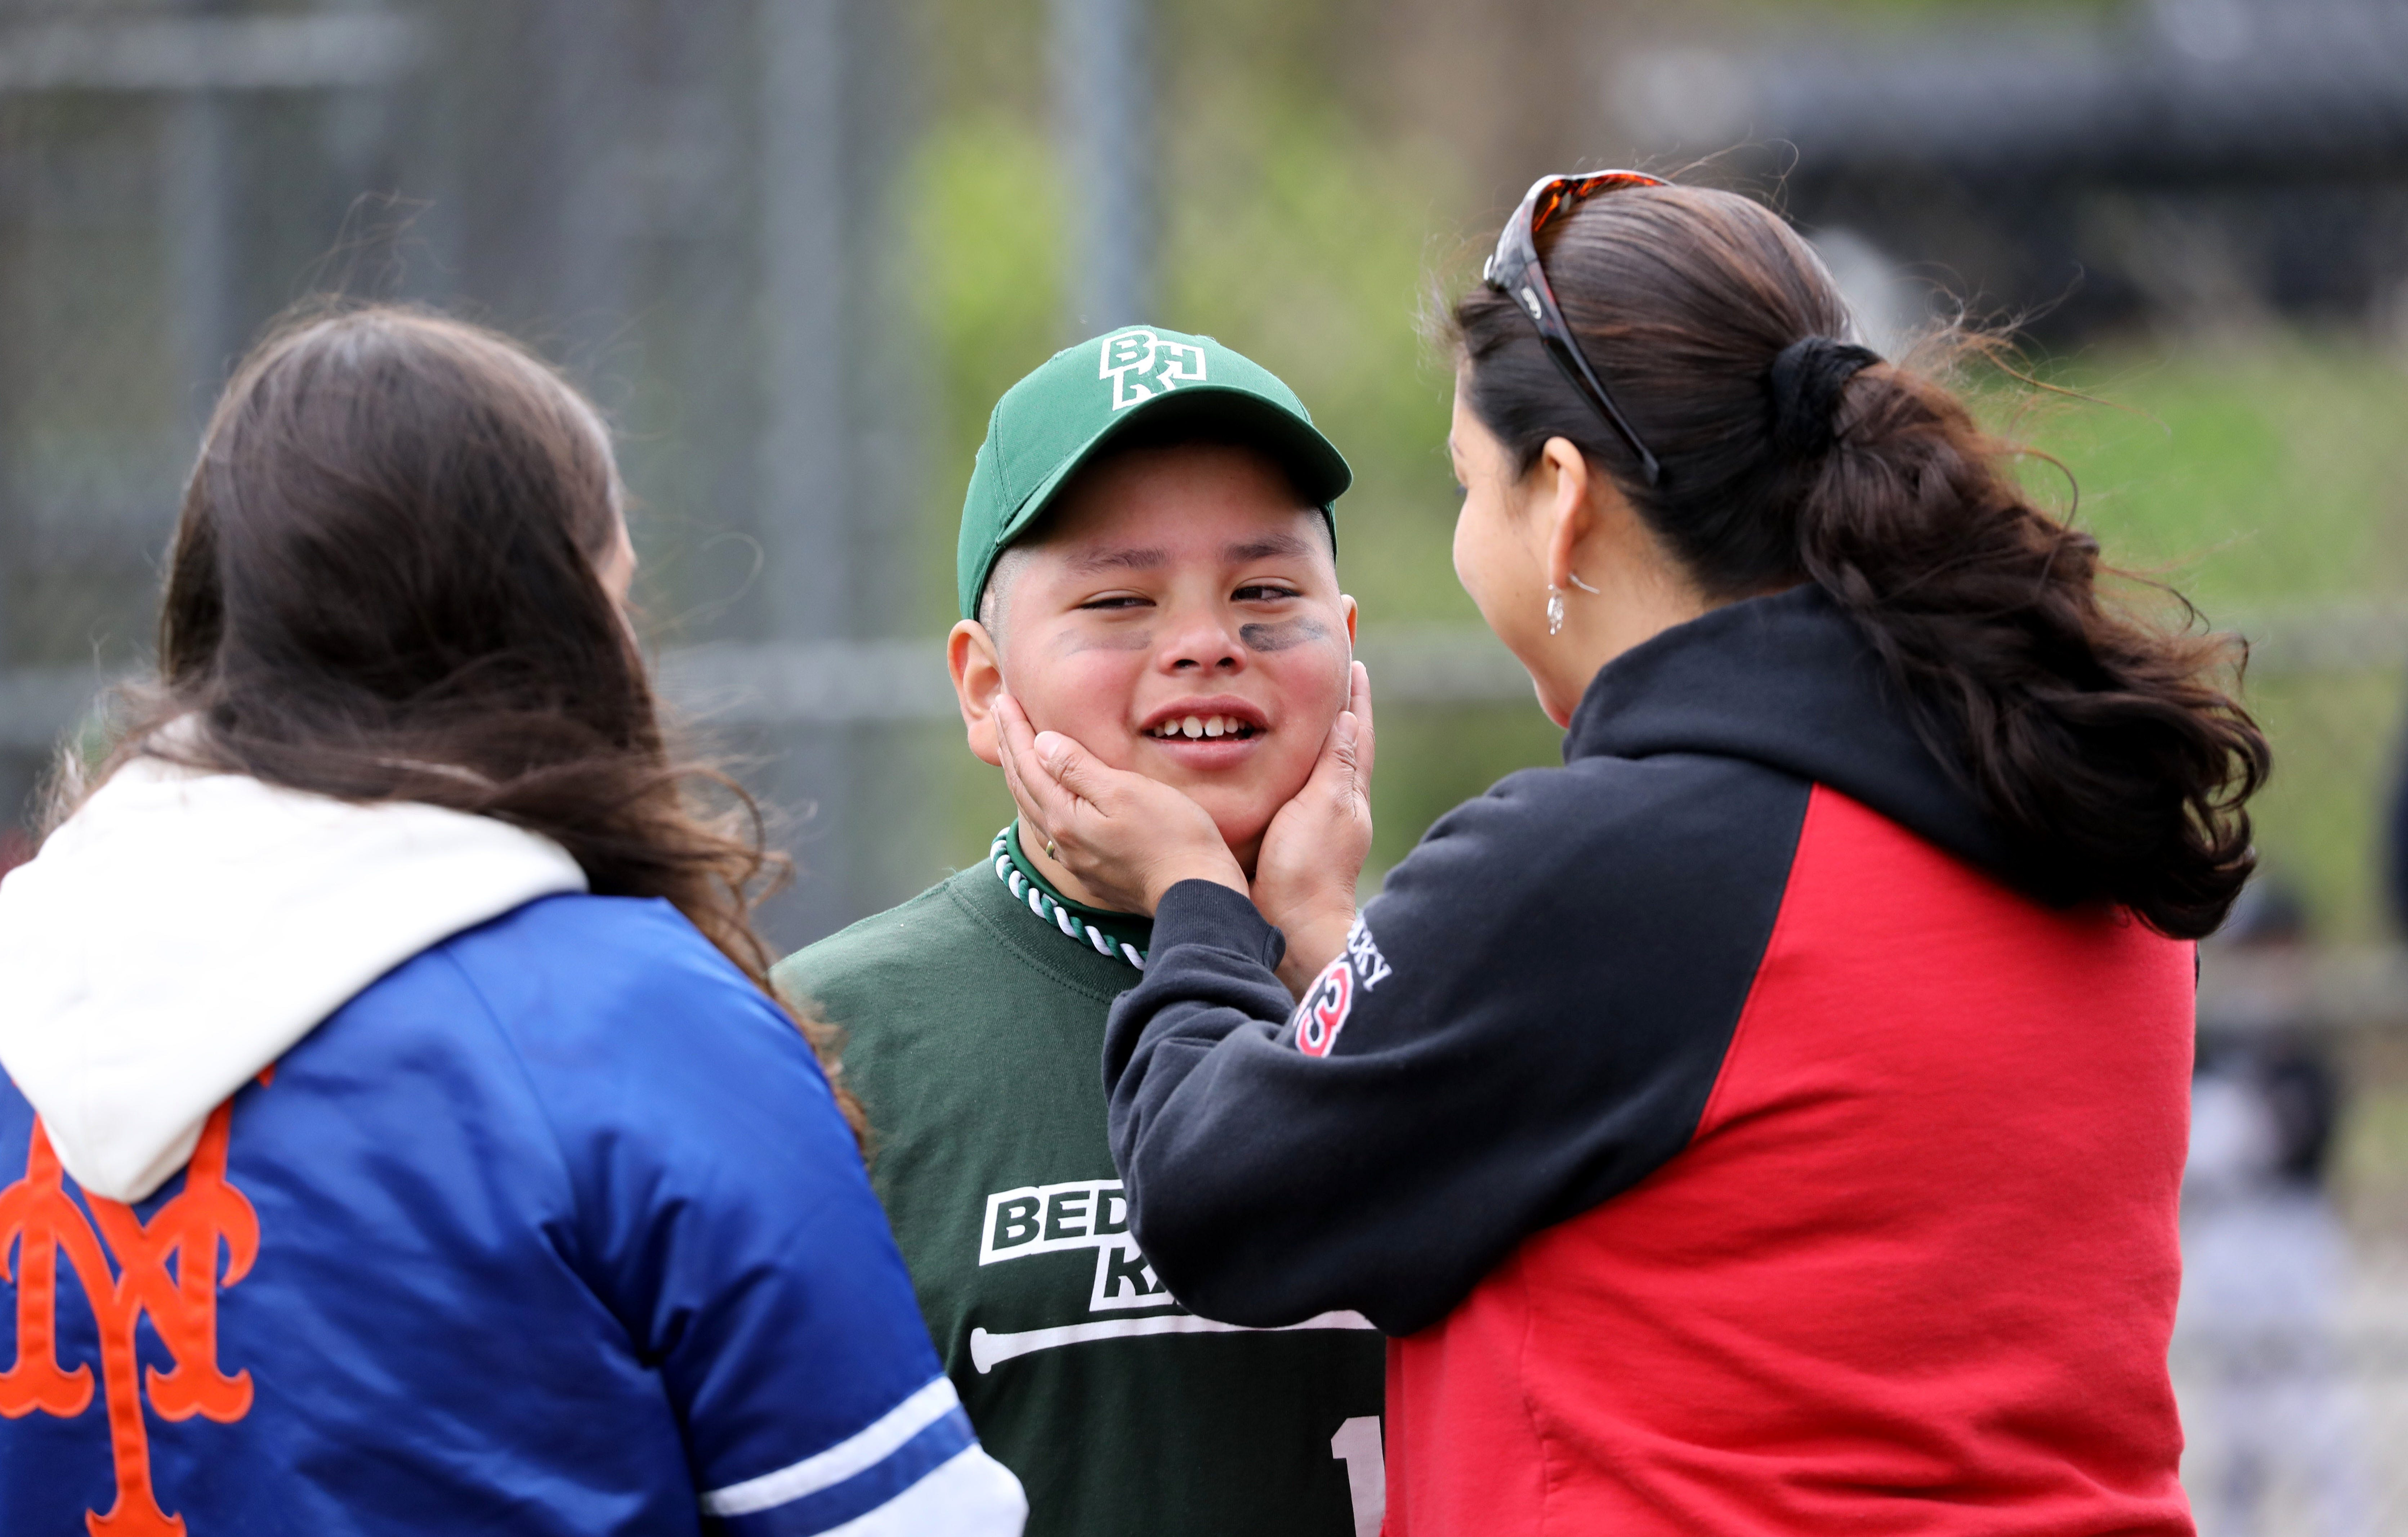 Video: After brain injury, Little Leaguer returns to the field